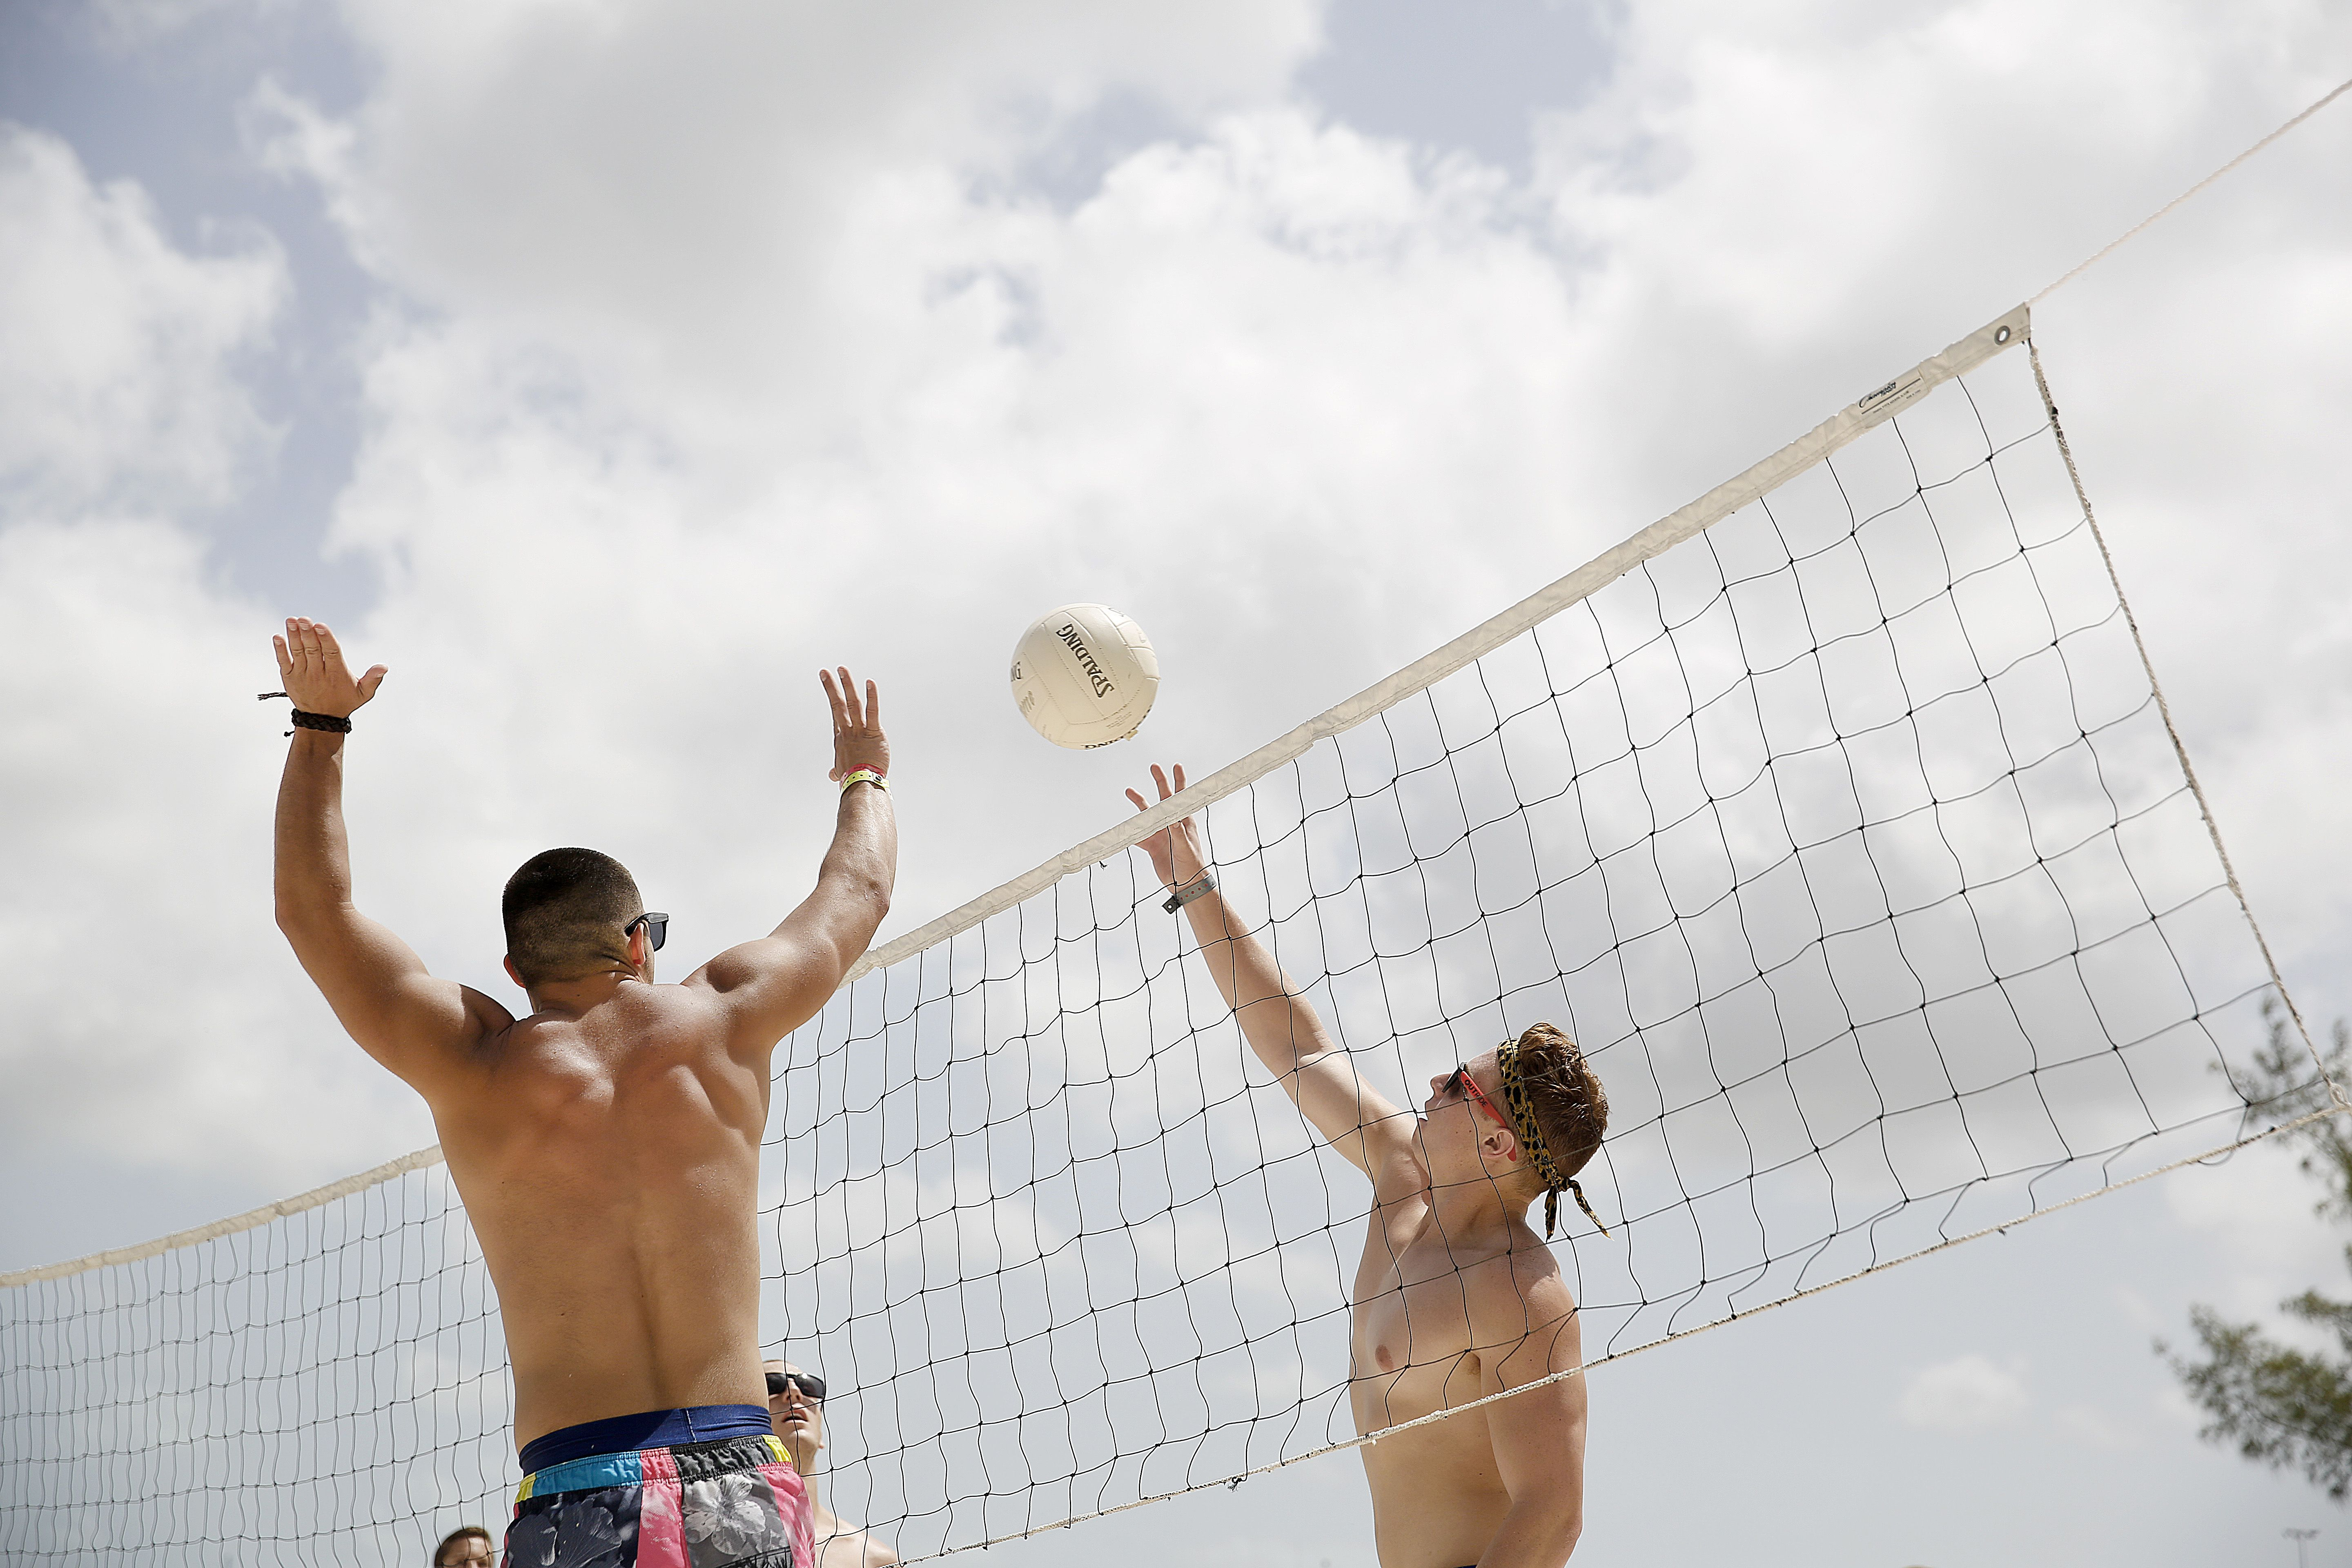 Stay fit on vacation with a game of beach volleyball!